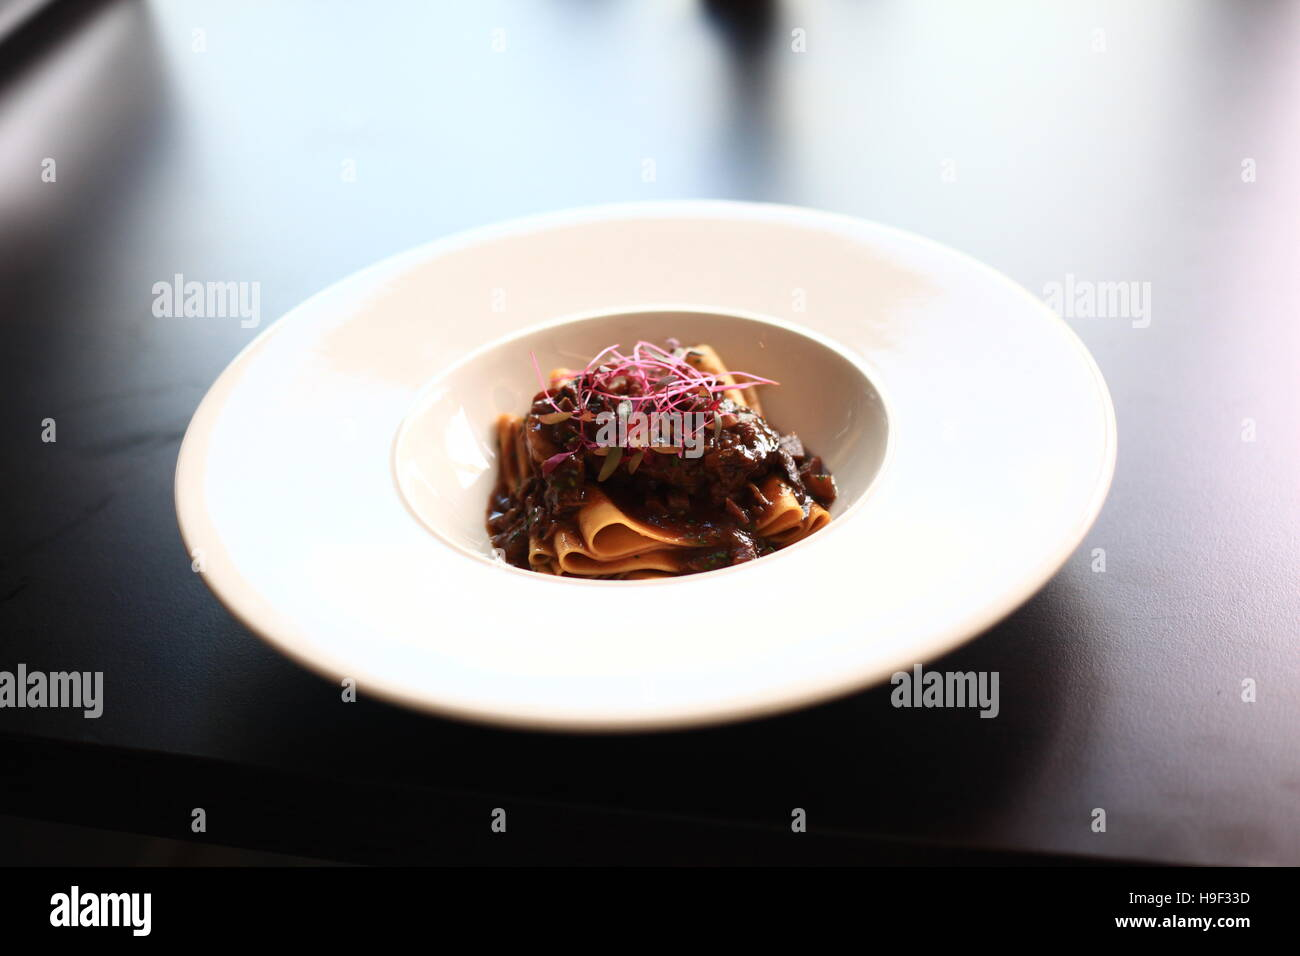 Pappardelle pasta with beef cheeks - Stock Image